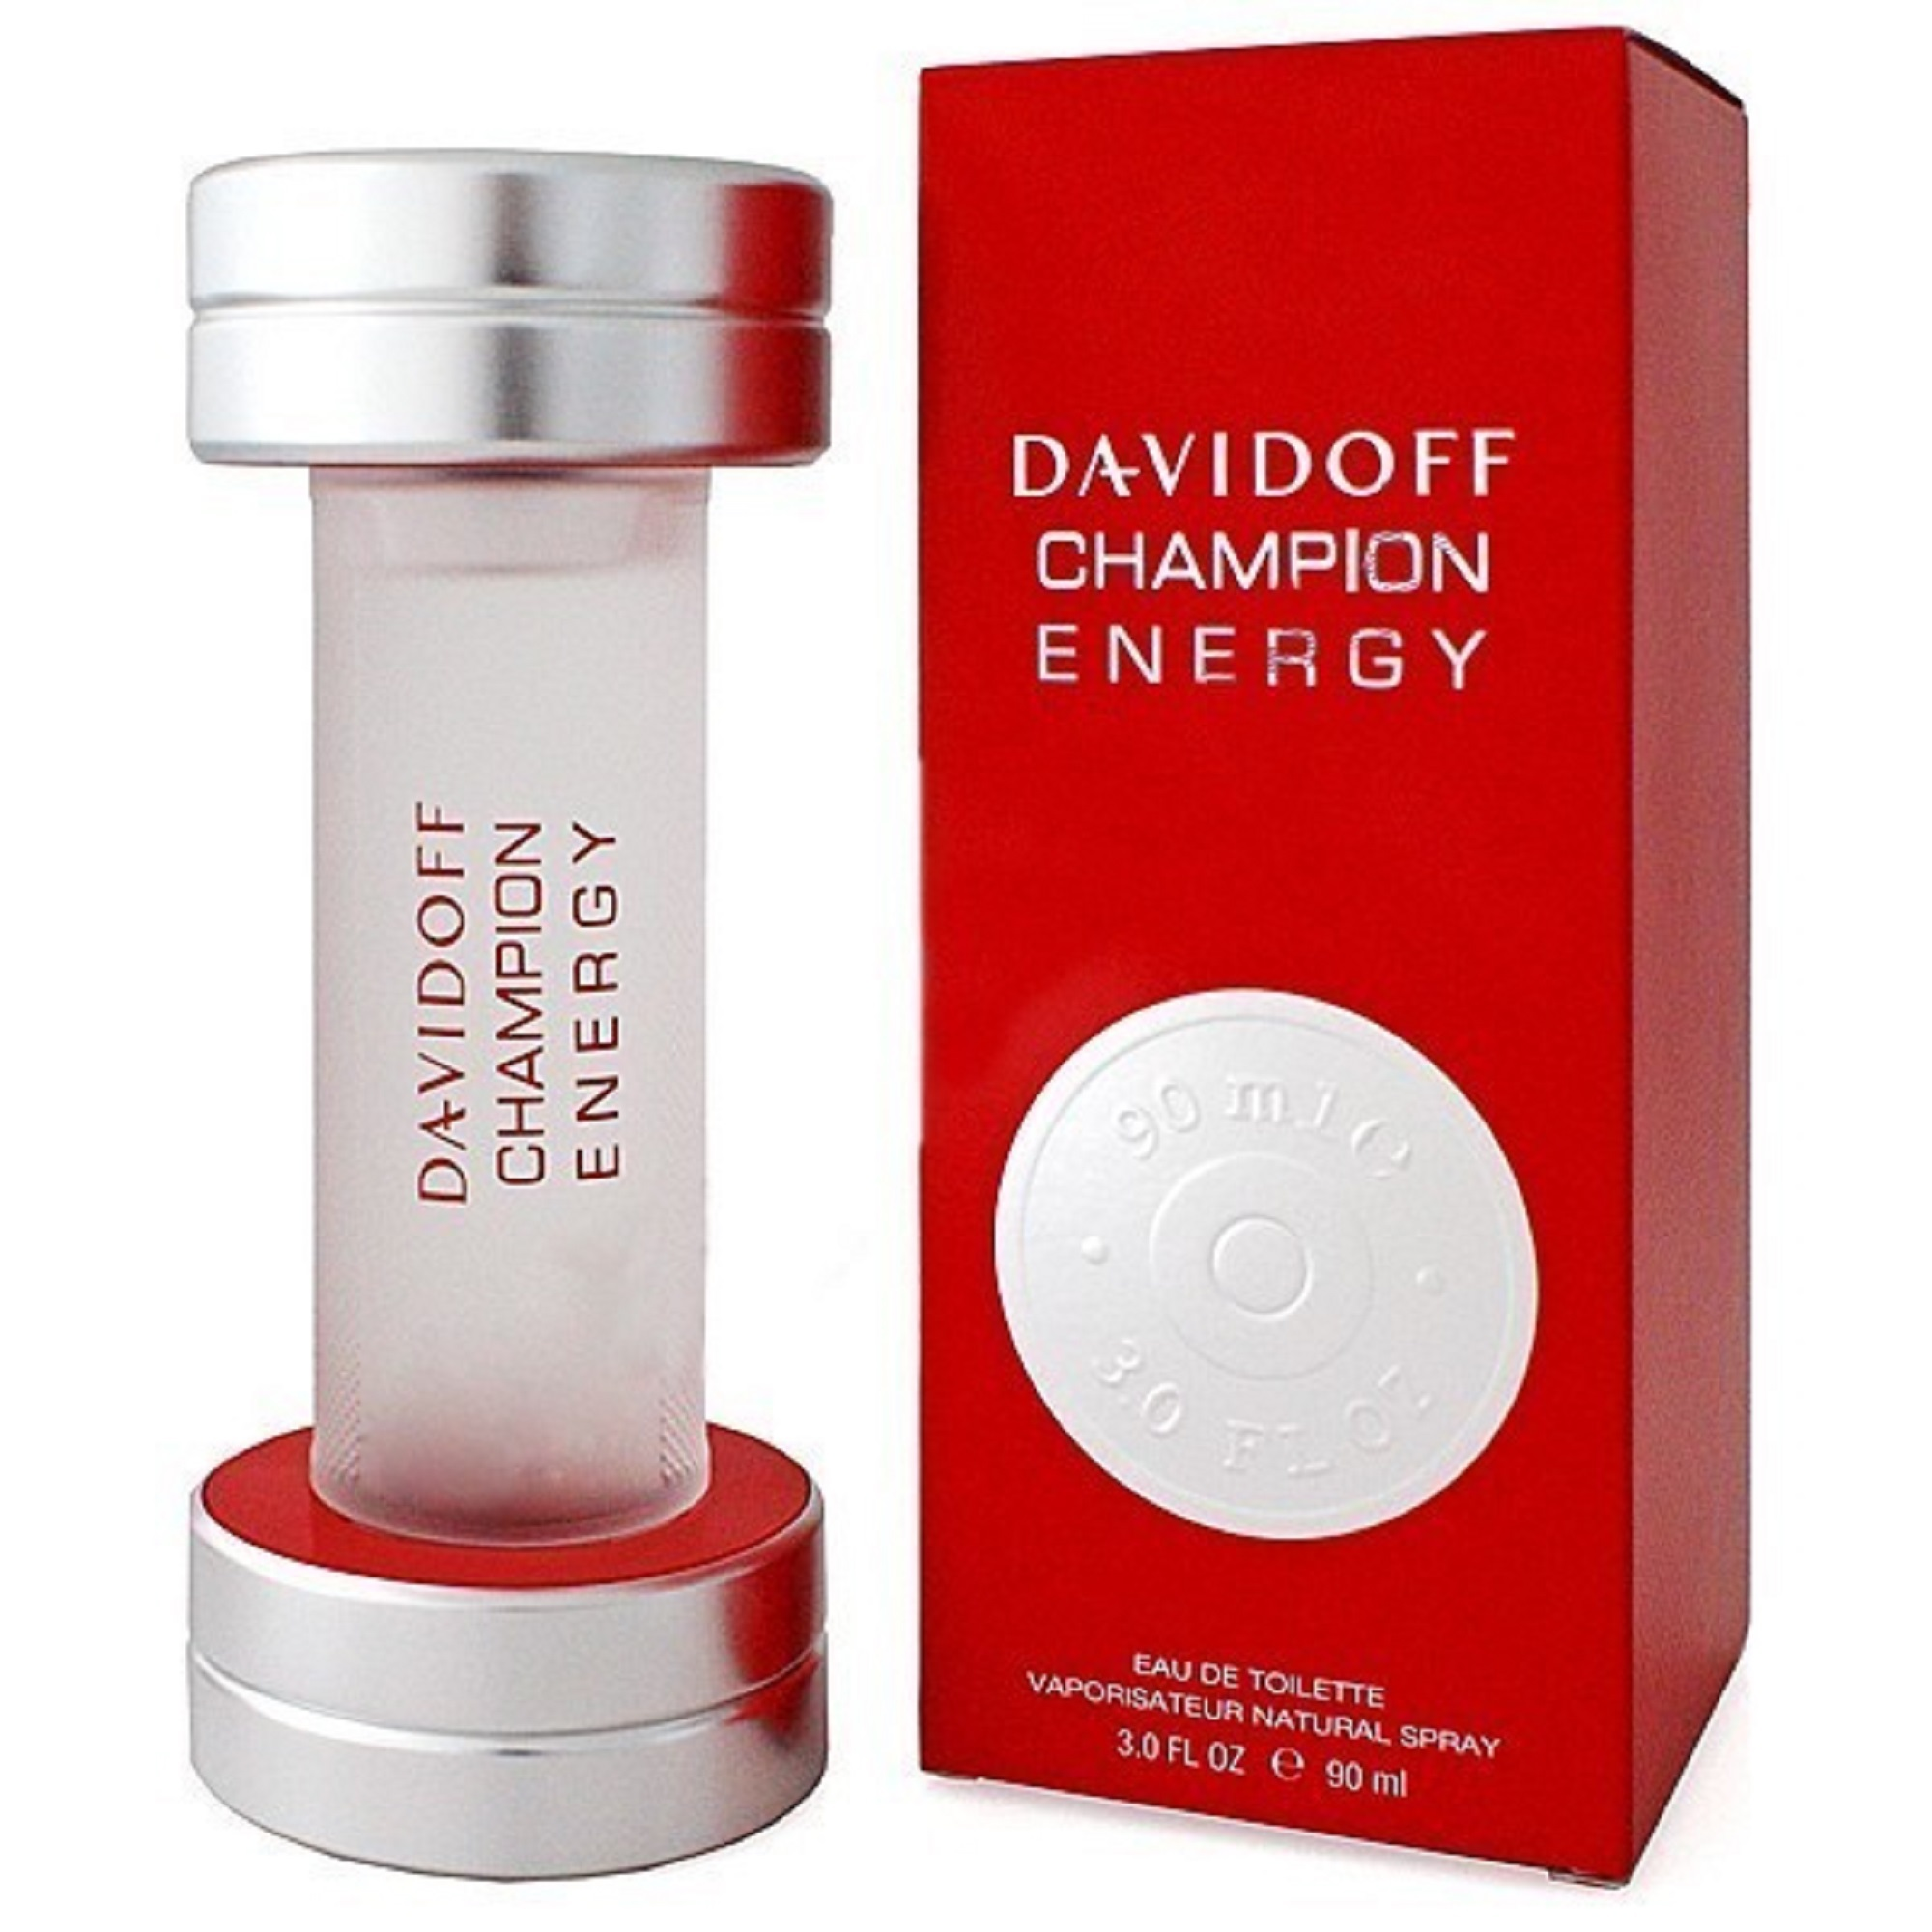 Davidoff Champion Energy for Men Eau De Toilette 90mL